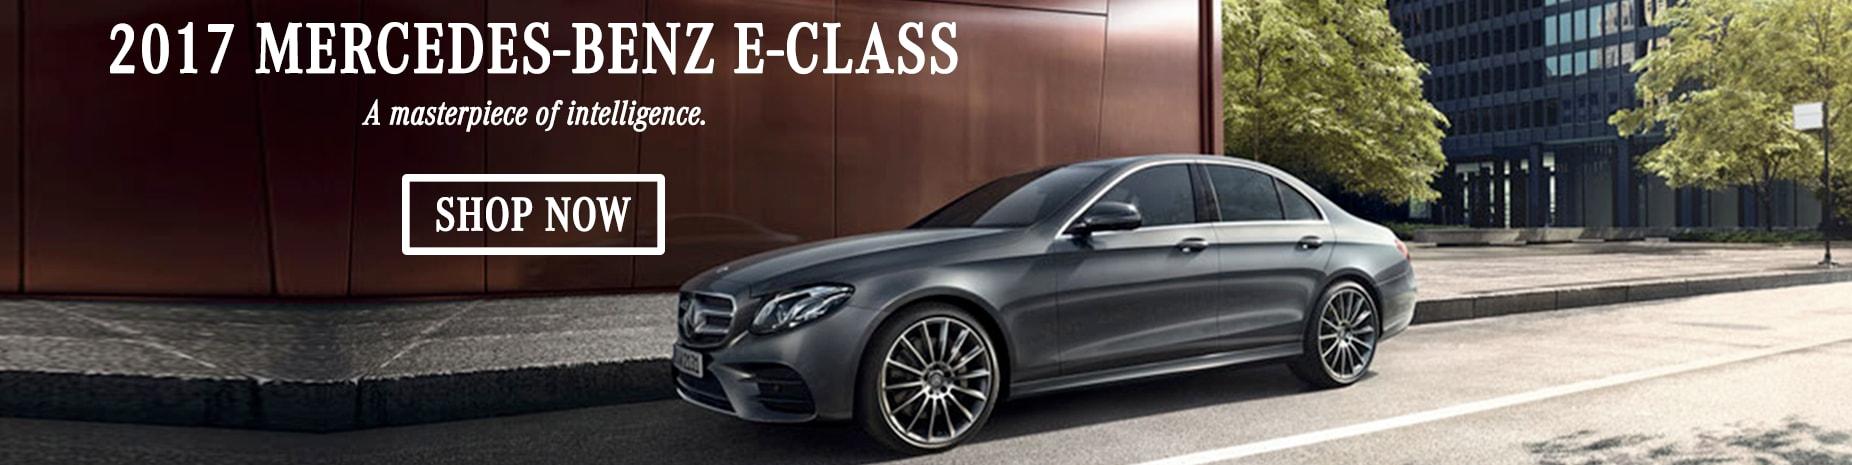 2017 mercedes benz e class has arrived at plaza motors for St charles mercedes benz